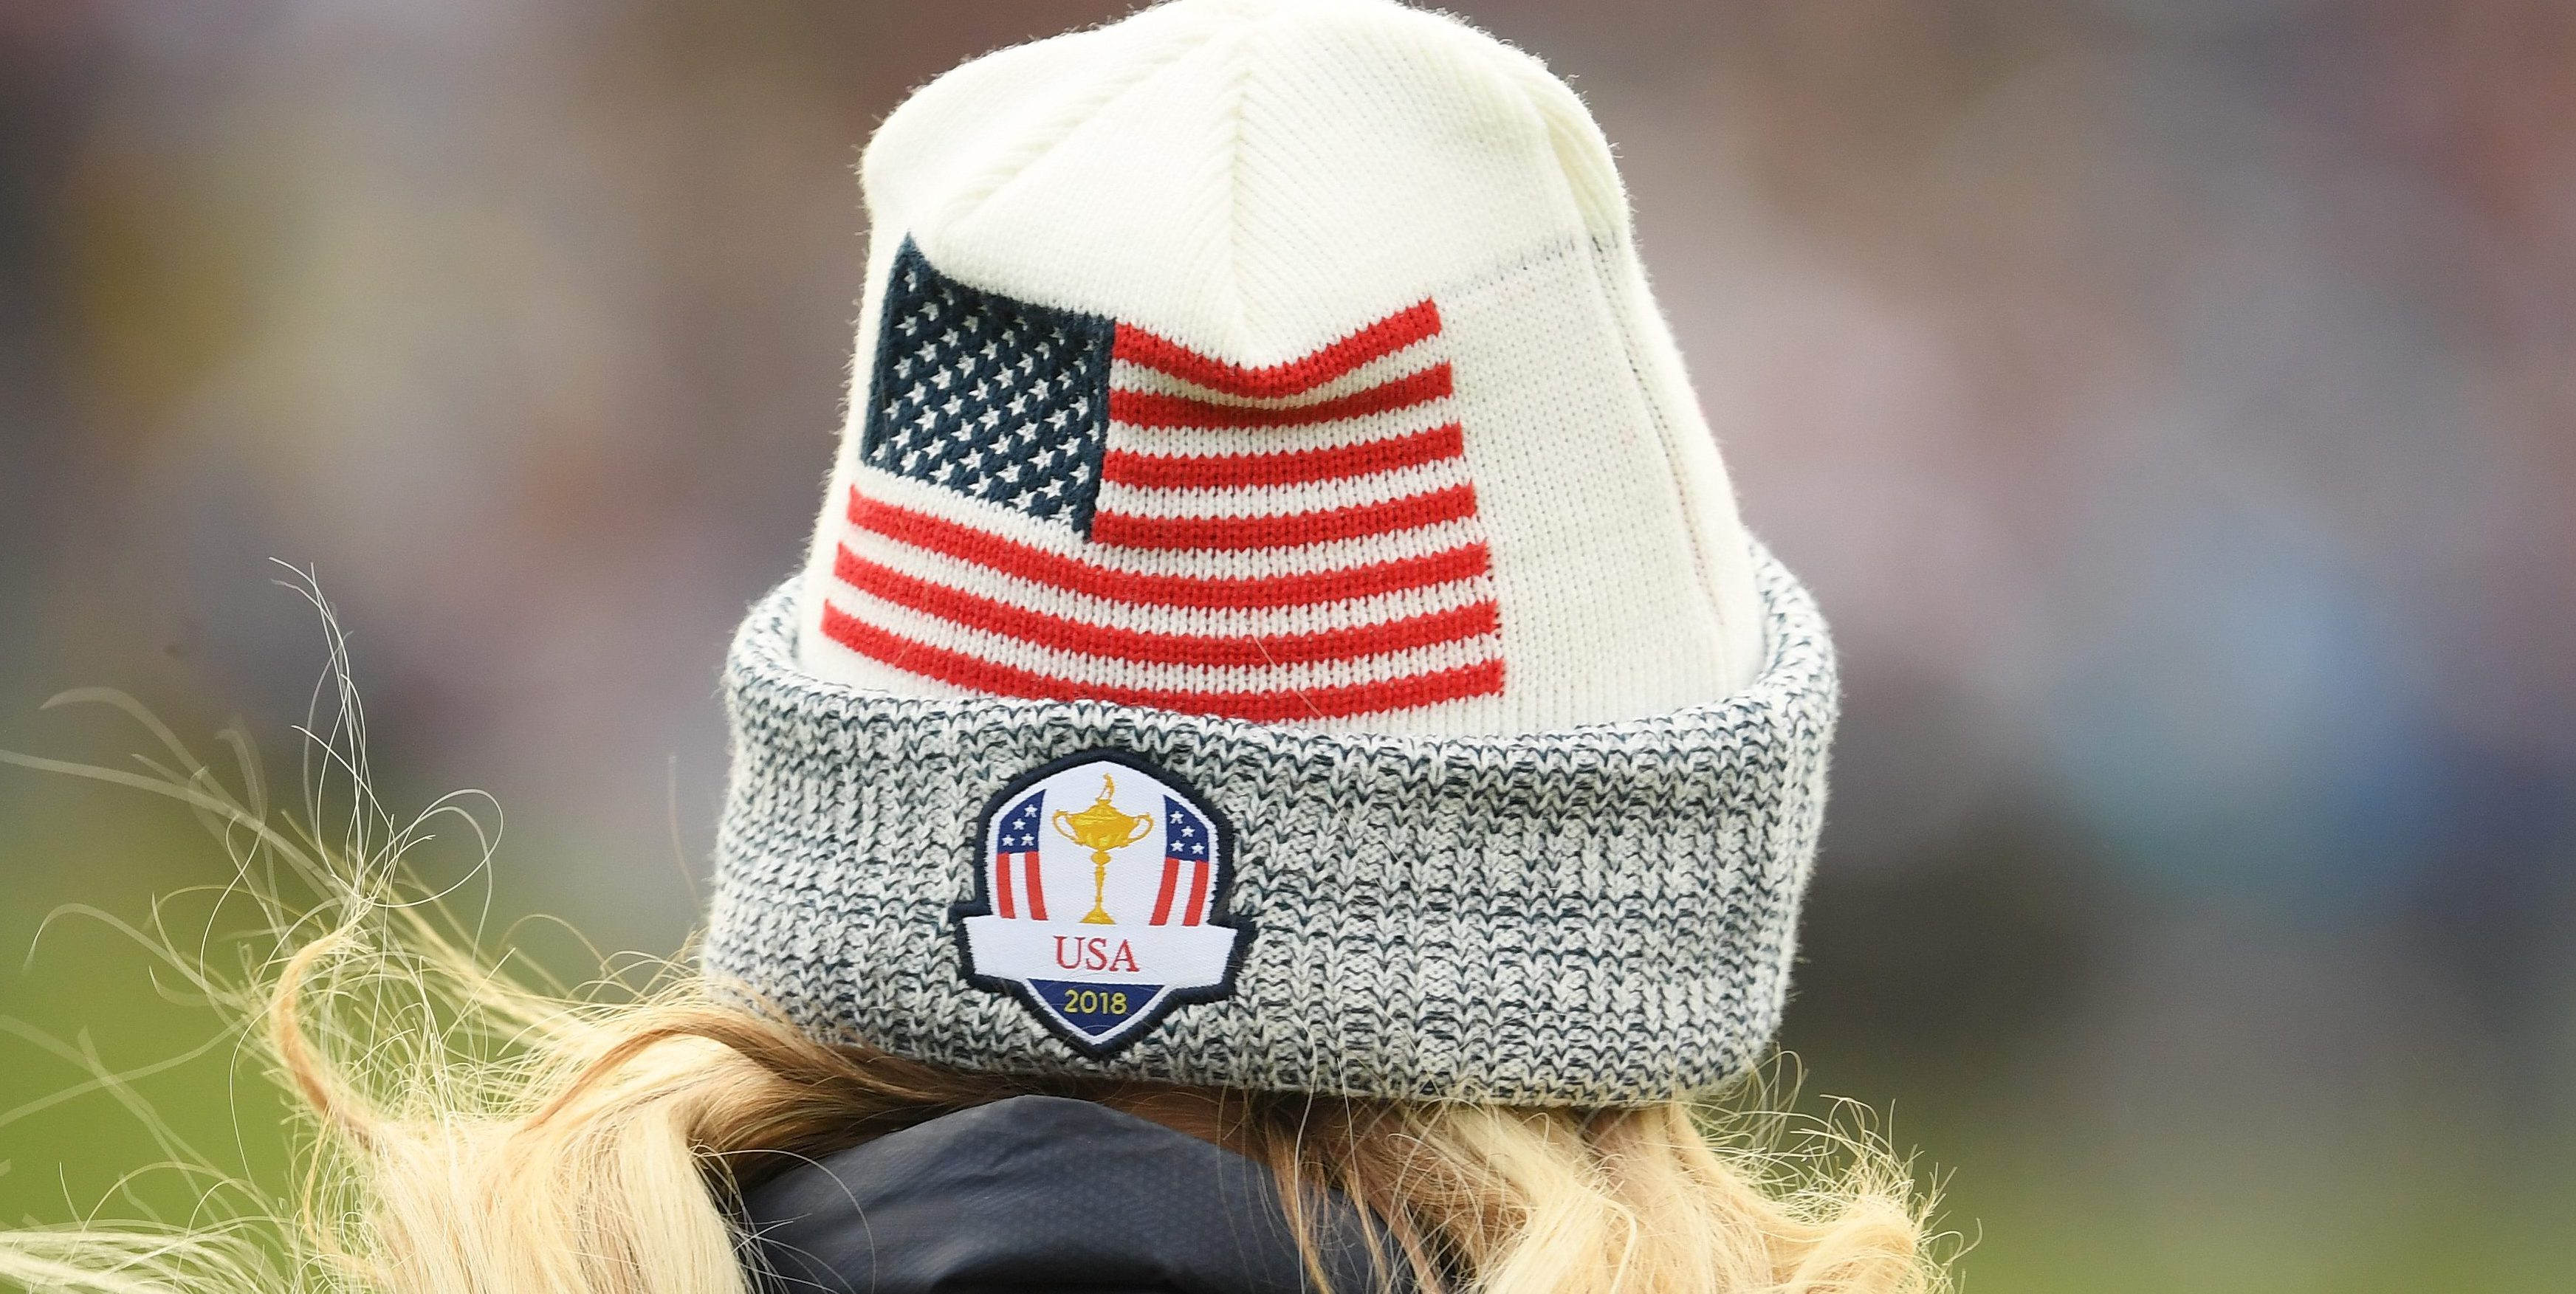 PARIS, FRANCE - SEPTEMBER 30: A detailed view of a Team USA hat during singles matches of the 2018 Ryder Cup at Le Golf National on September 30, 2018 in Paris, France. (Photo by Ross Kinnaird/Getty Images)